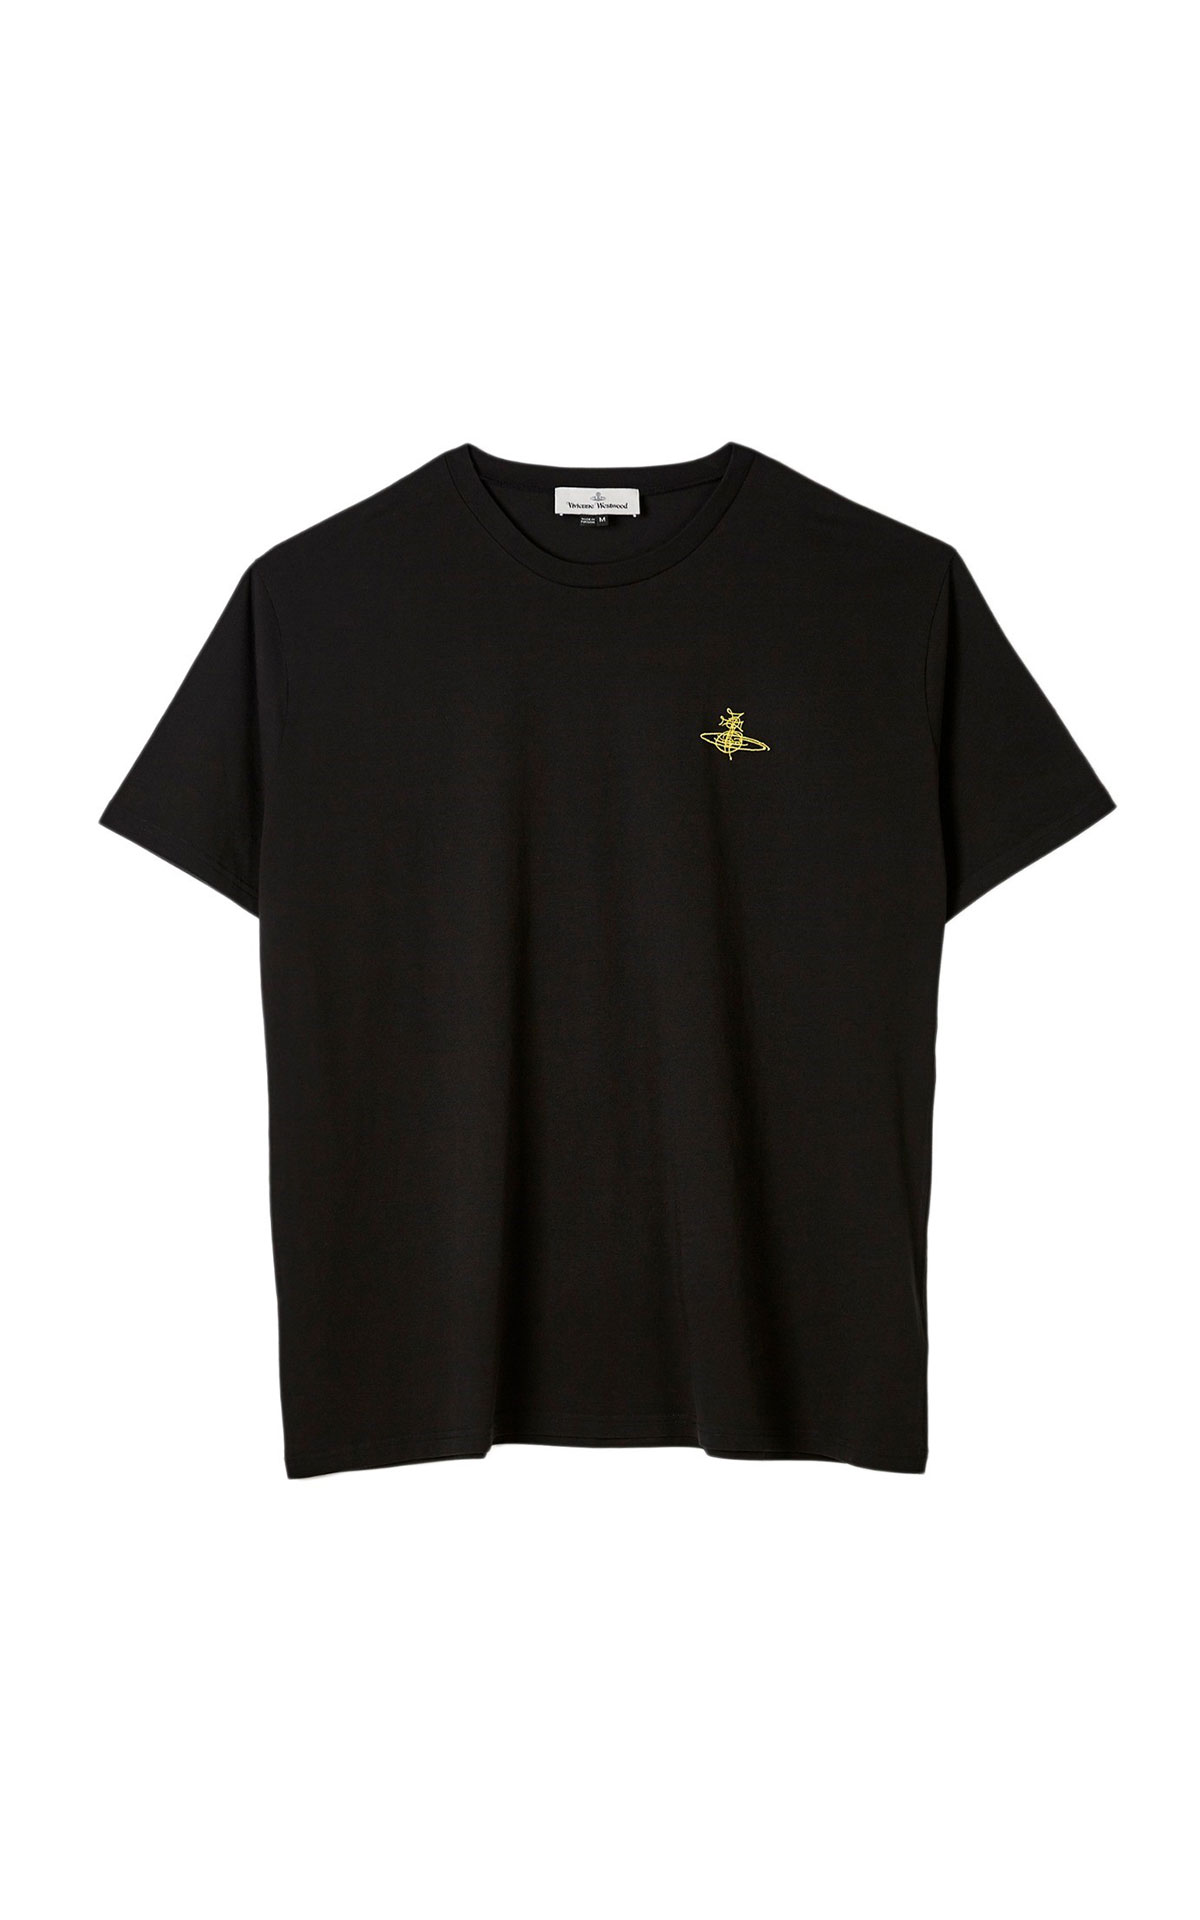 Vivienne Westwood Black oversize t-shirt from Bicester Village